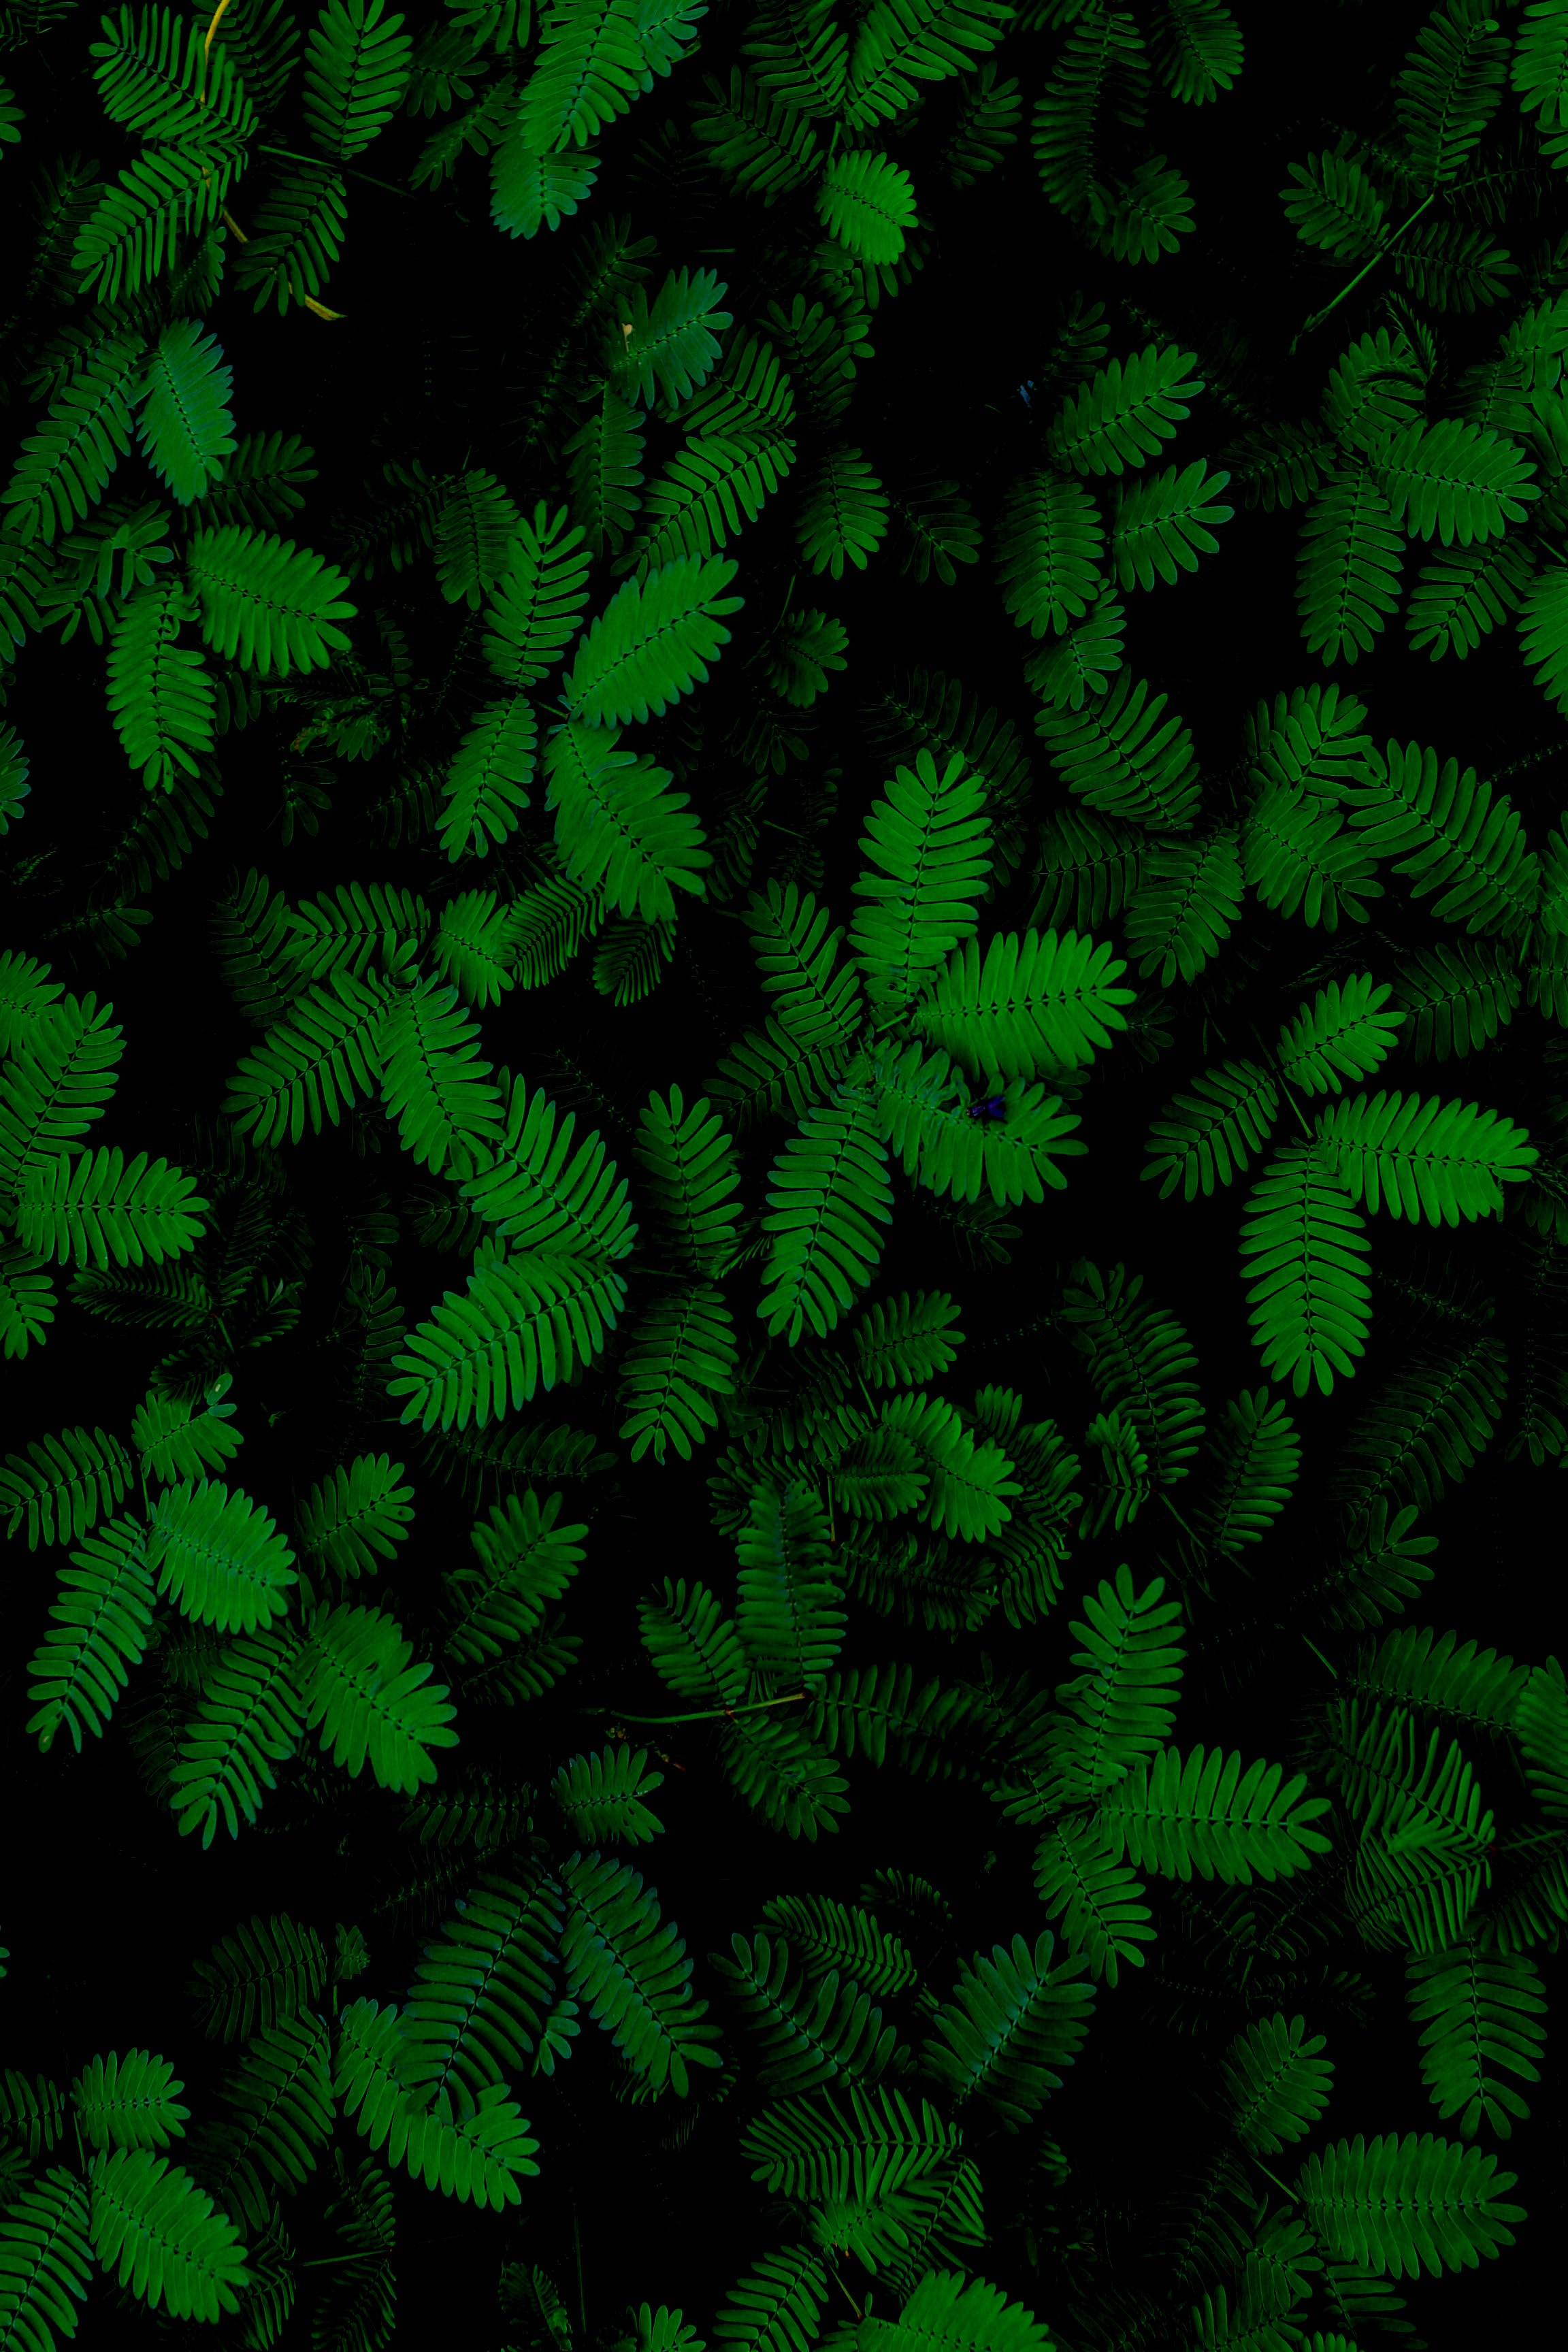 155922 download wallpaper Close-Up, Plants, Nature, Leaves screensavers and pictures for free